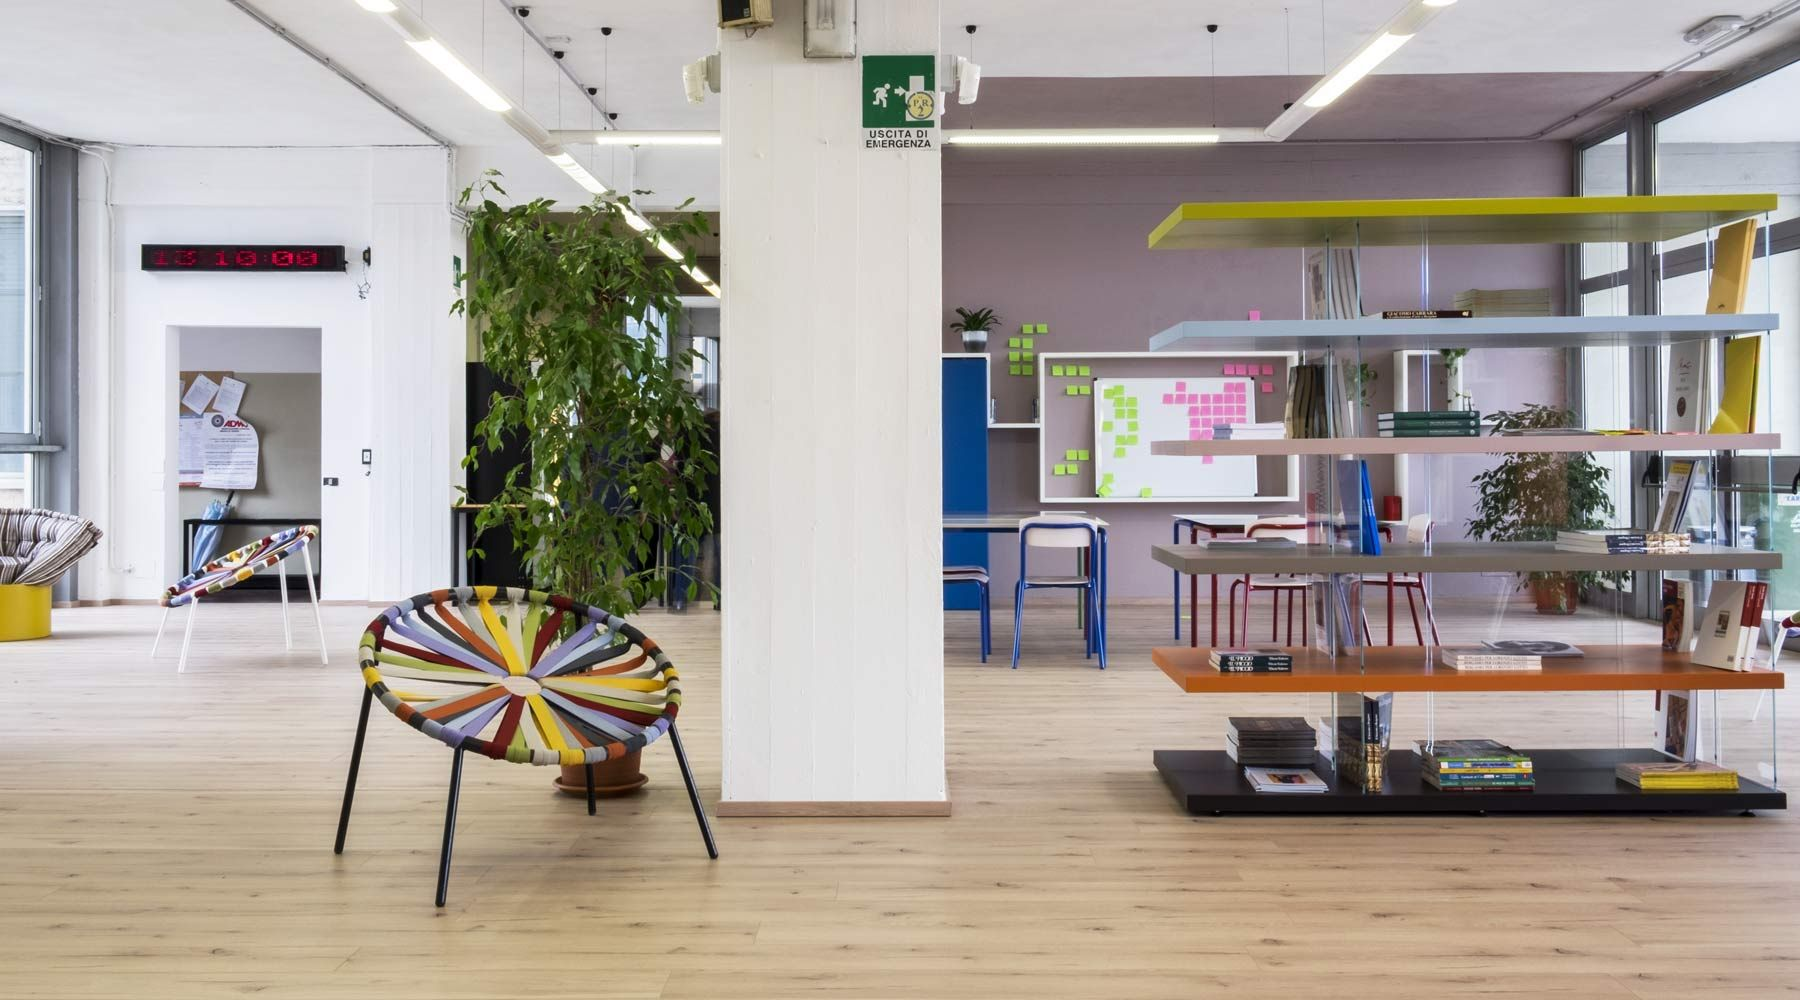 From the kid's room to school, flexible spaces where design is used as an educational tool